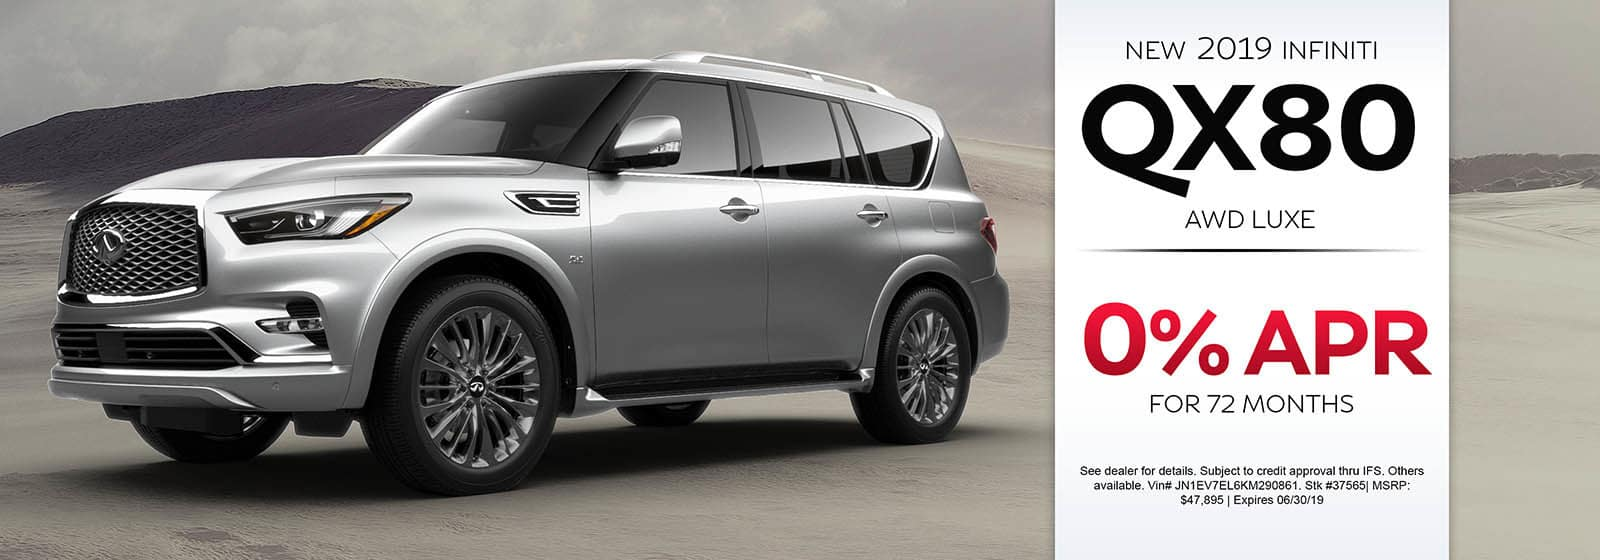 2019 INFINITI QX80 AWD LUXE 0% APR For 72 Months